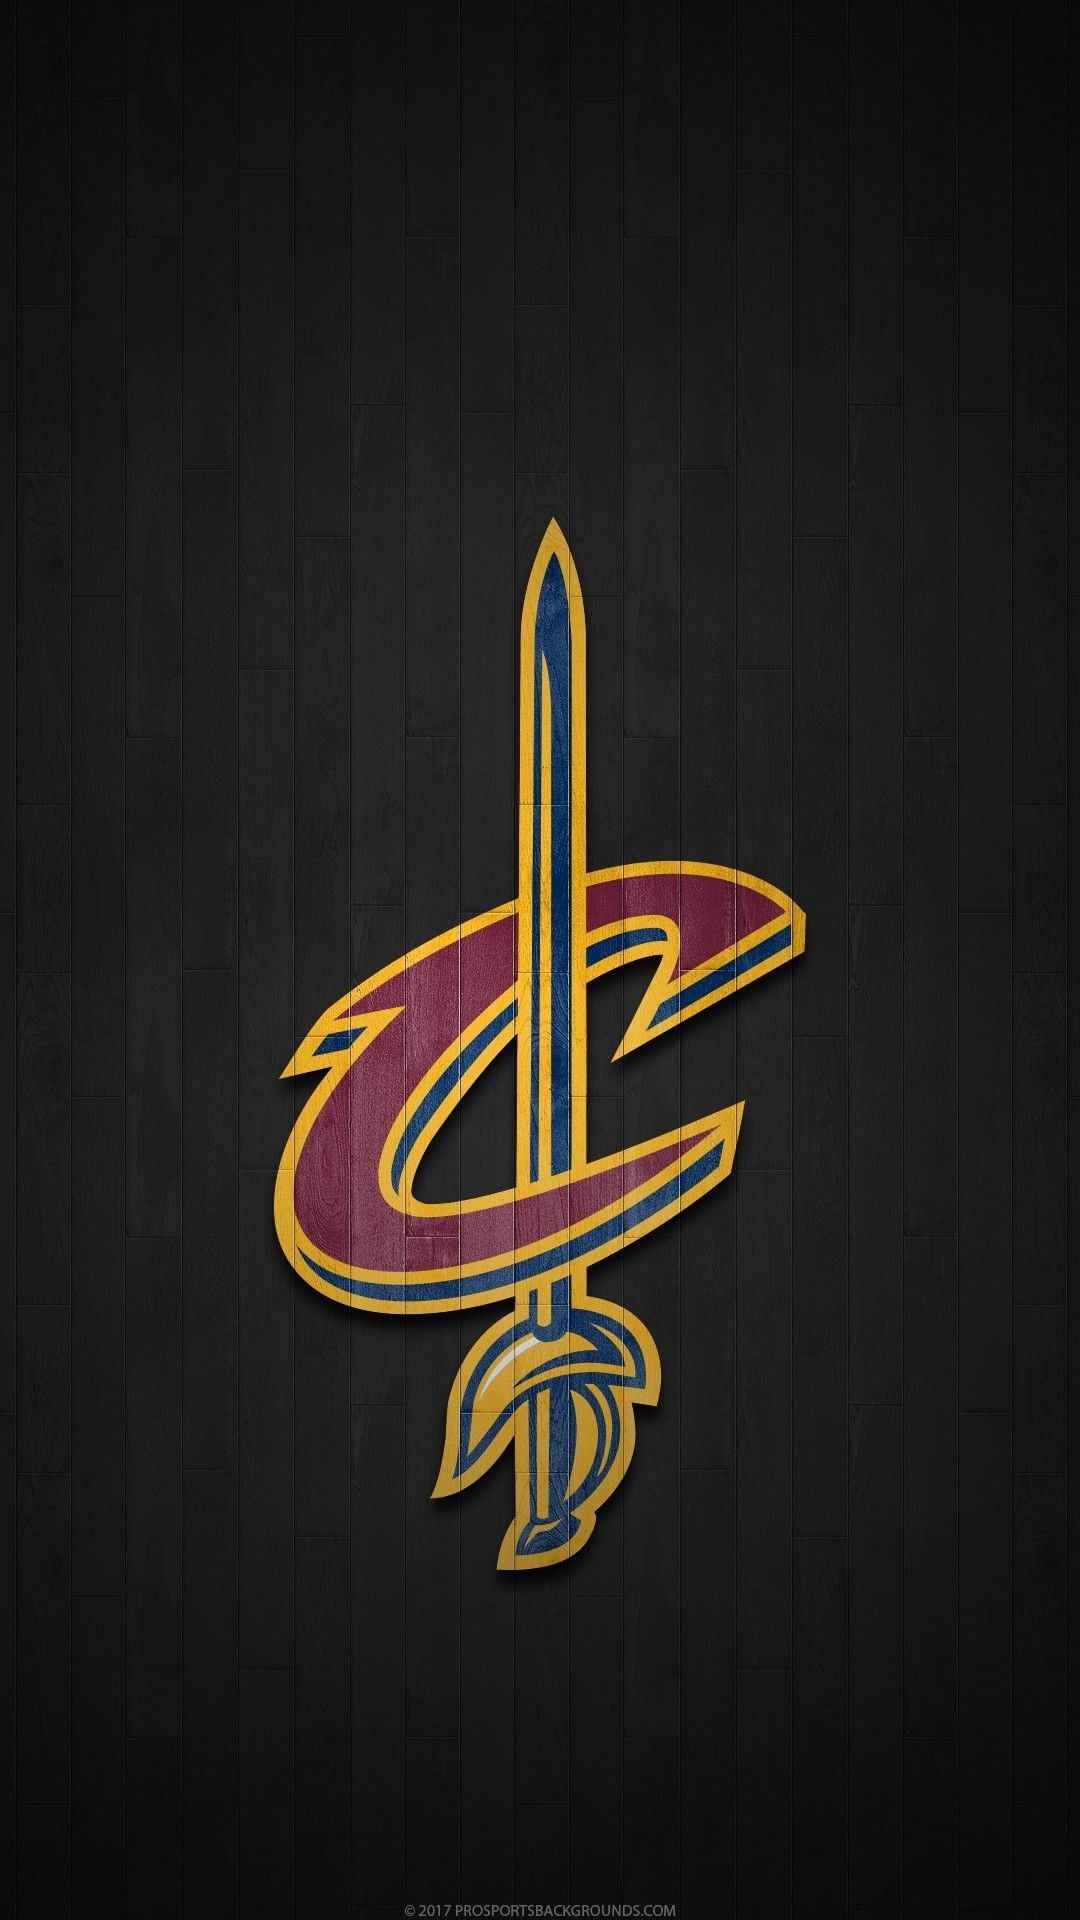 Cavs Wallpaper Iphone Hd 2020 Basketball Wallpaper Cavaliers Wallpaper Cavs Wallpaper Basketball Wallpaper